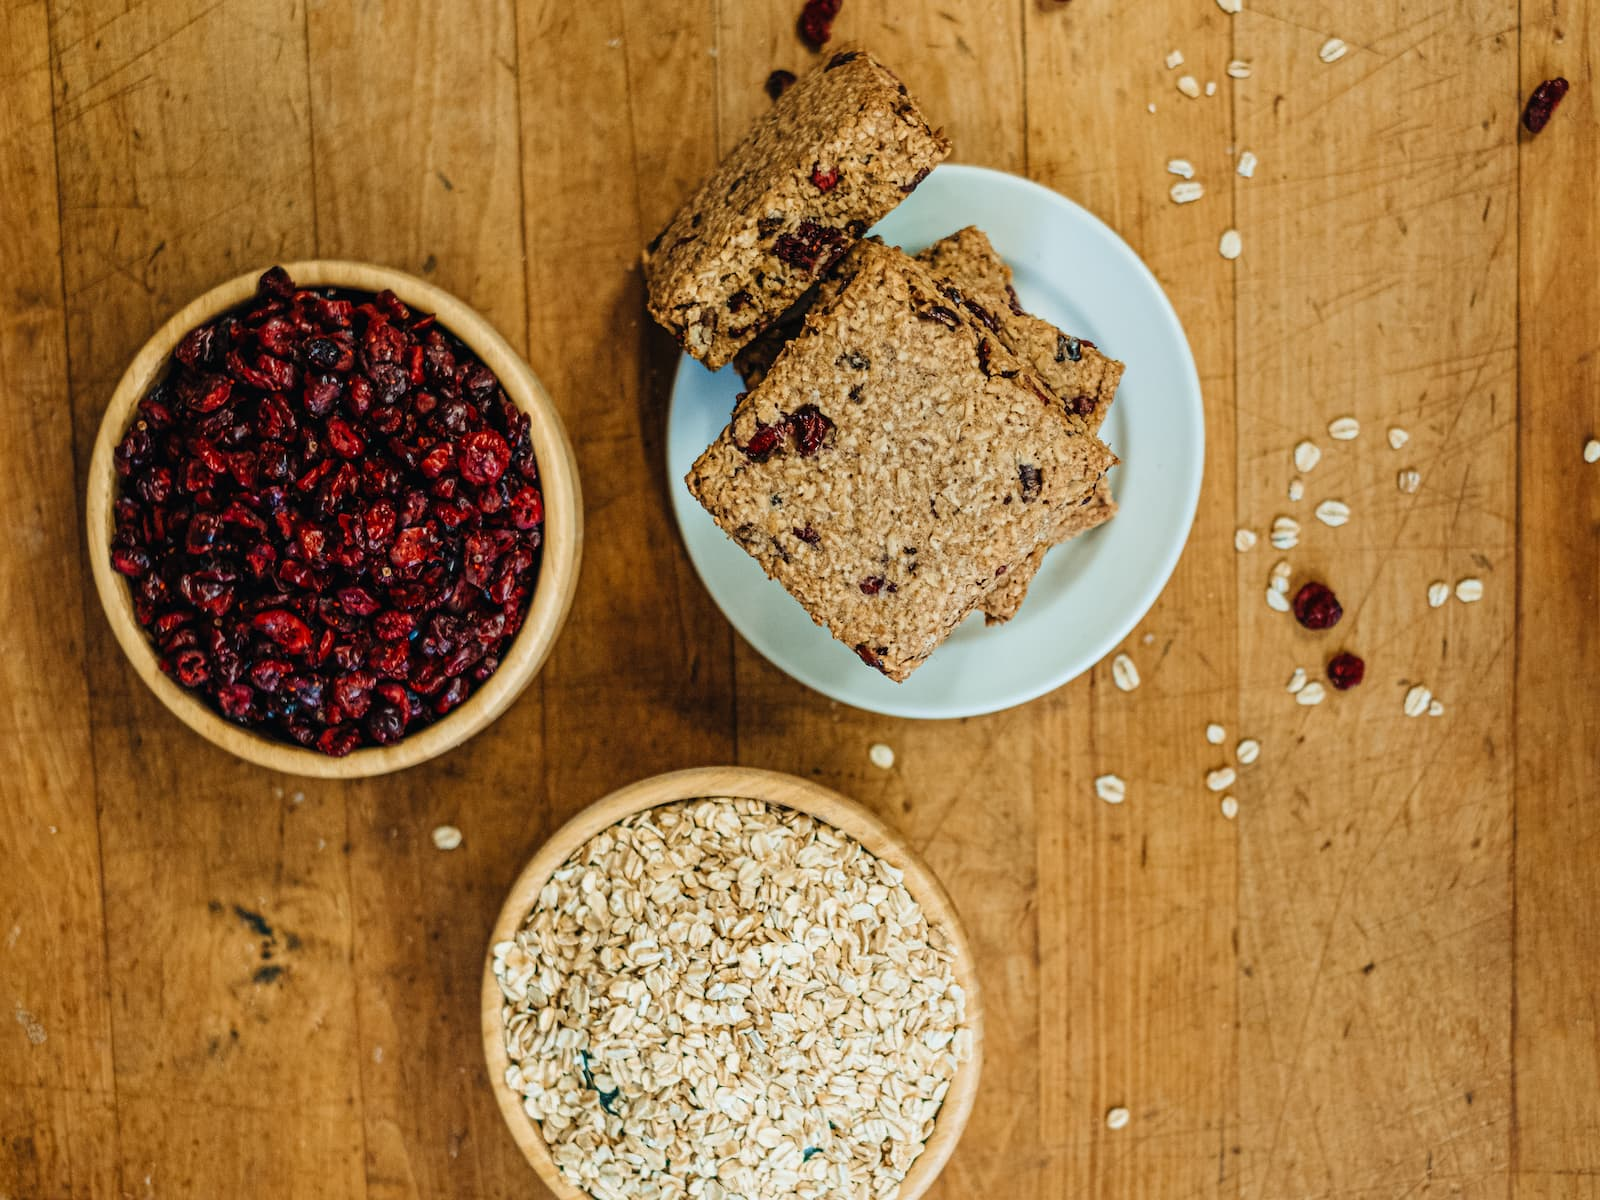 Oatcakes on a table next to cranberries and oatmeal